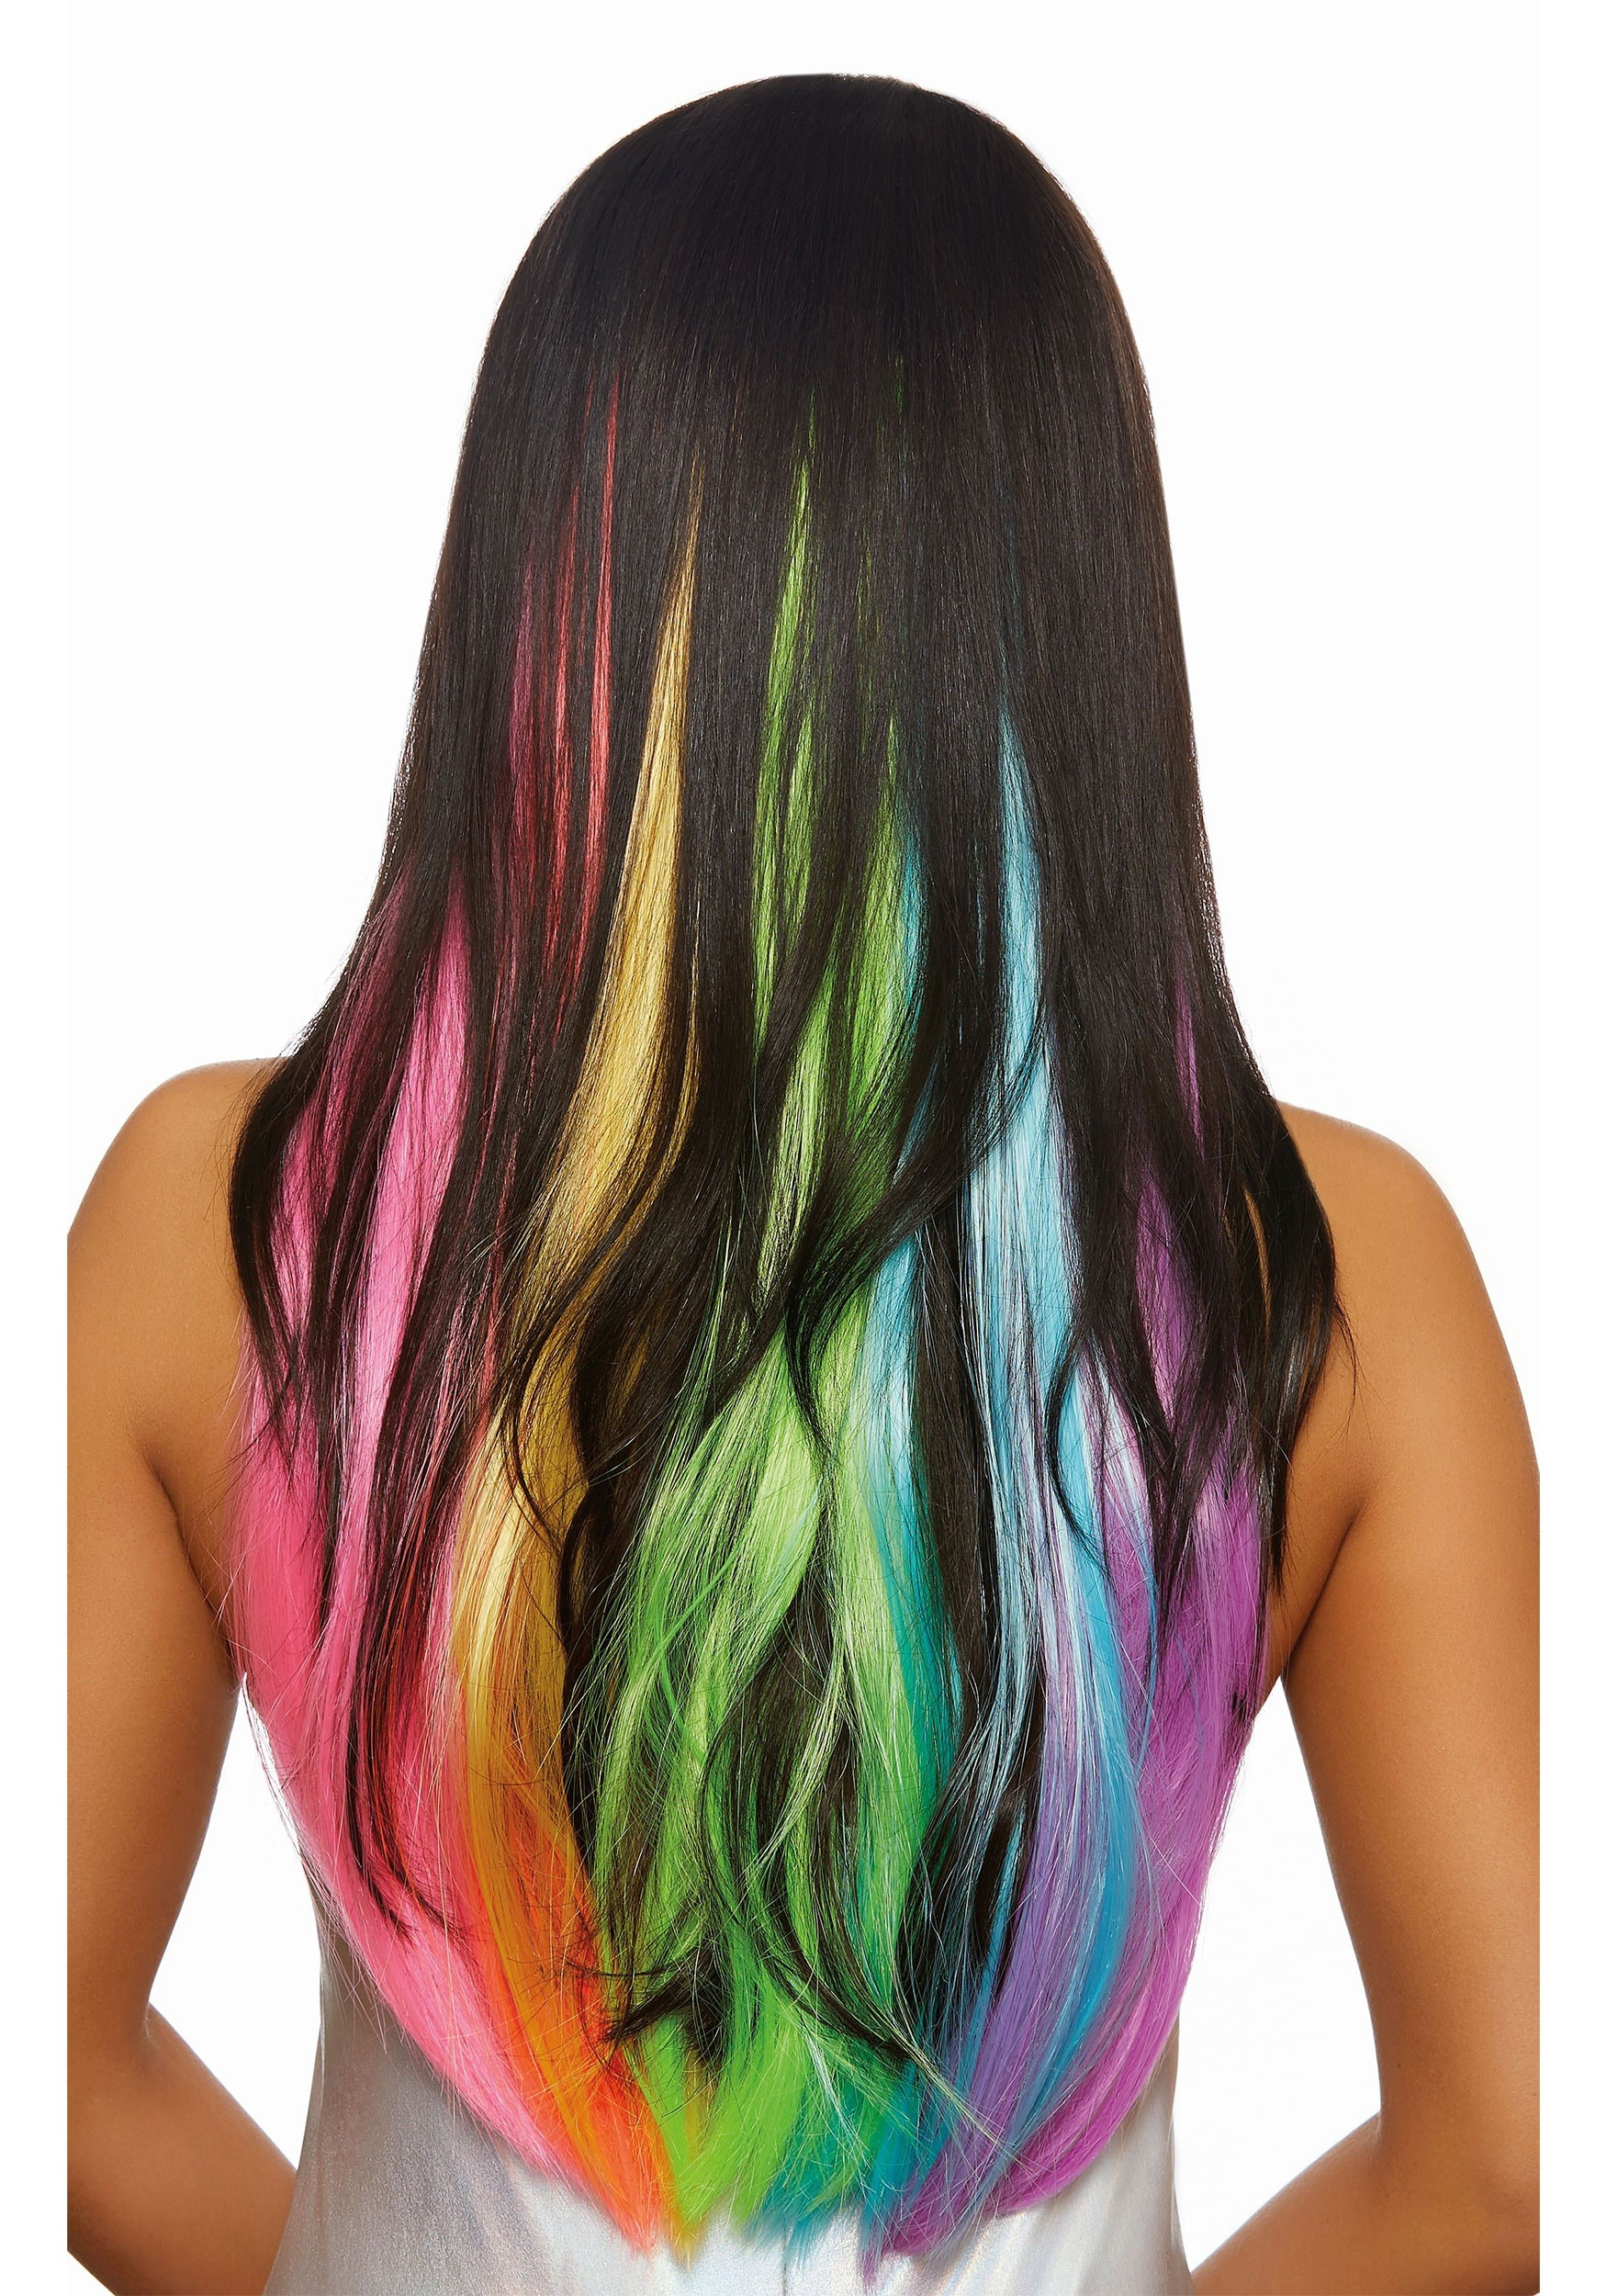 3-Piece Long Wavy Neon Rainbow Hair Extensions